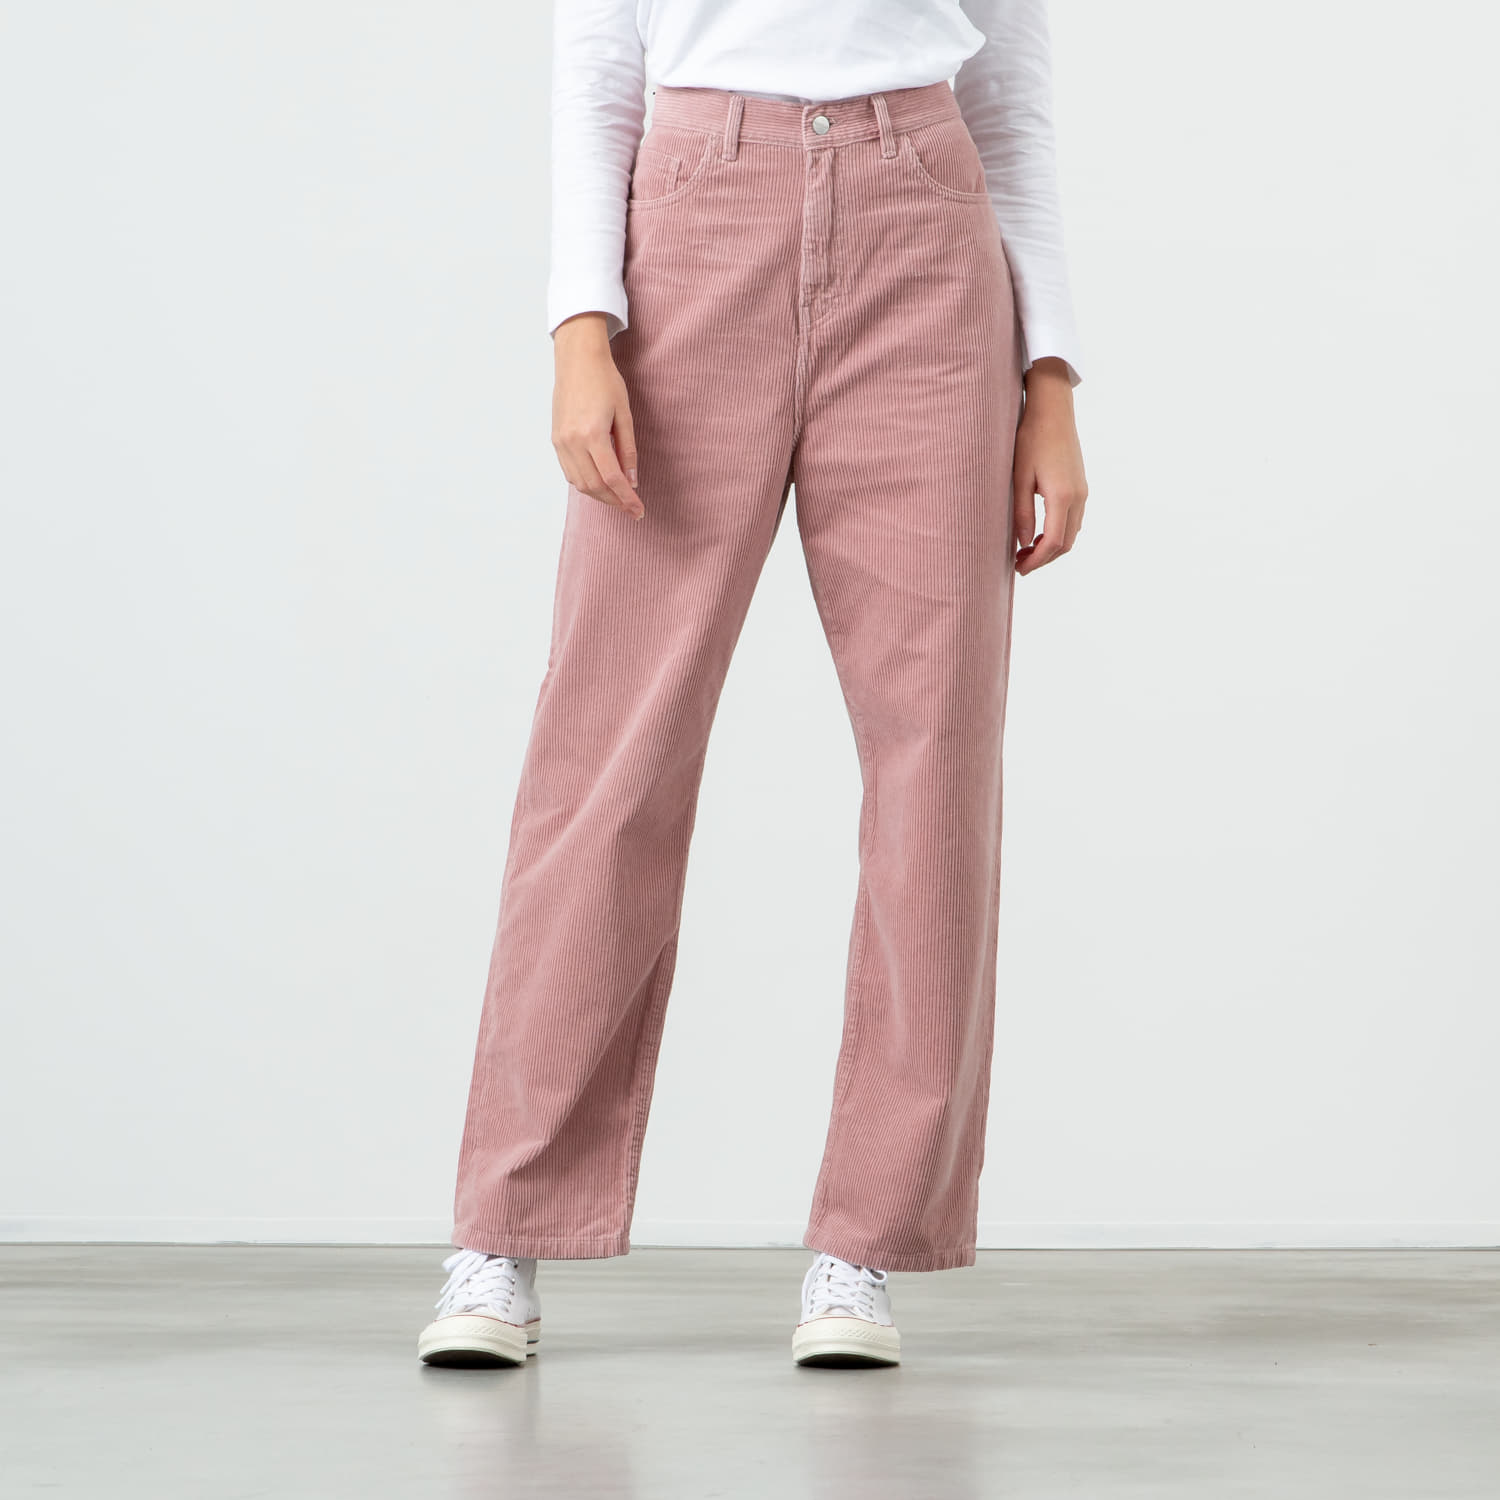 Pants and jeans Carhartt WIP Newport Pants Blushed Rinsed